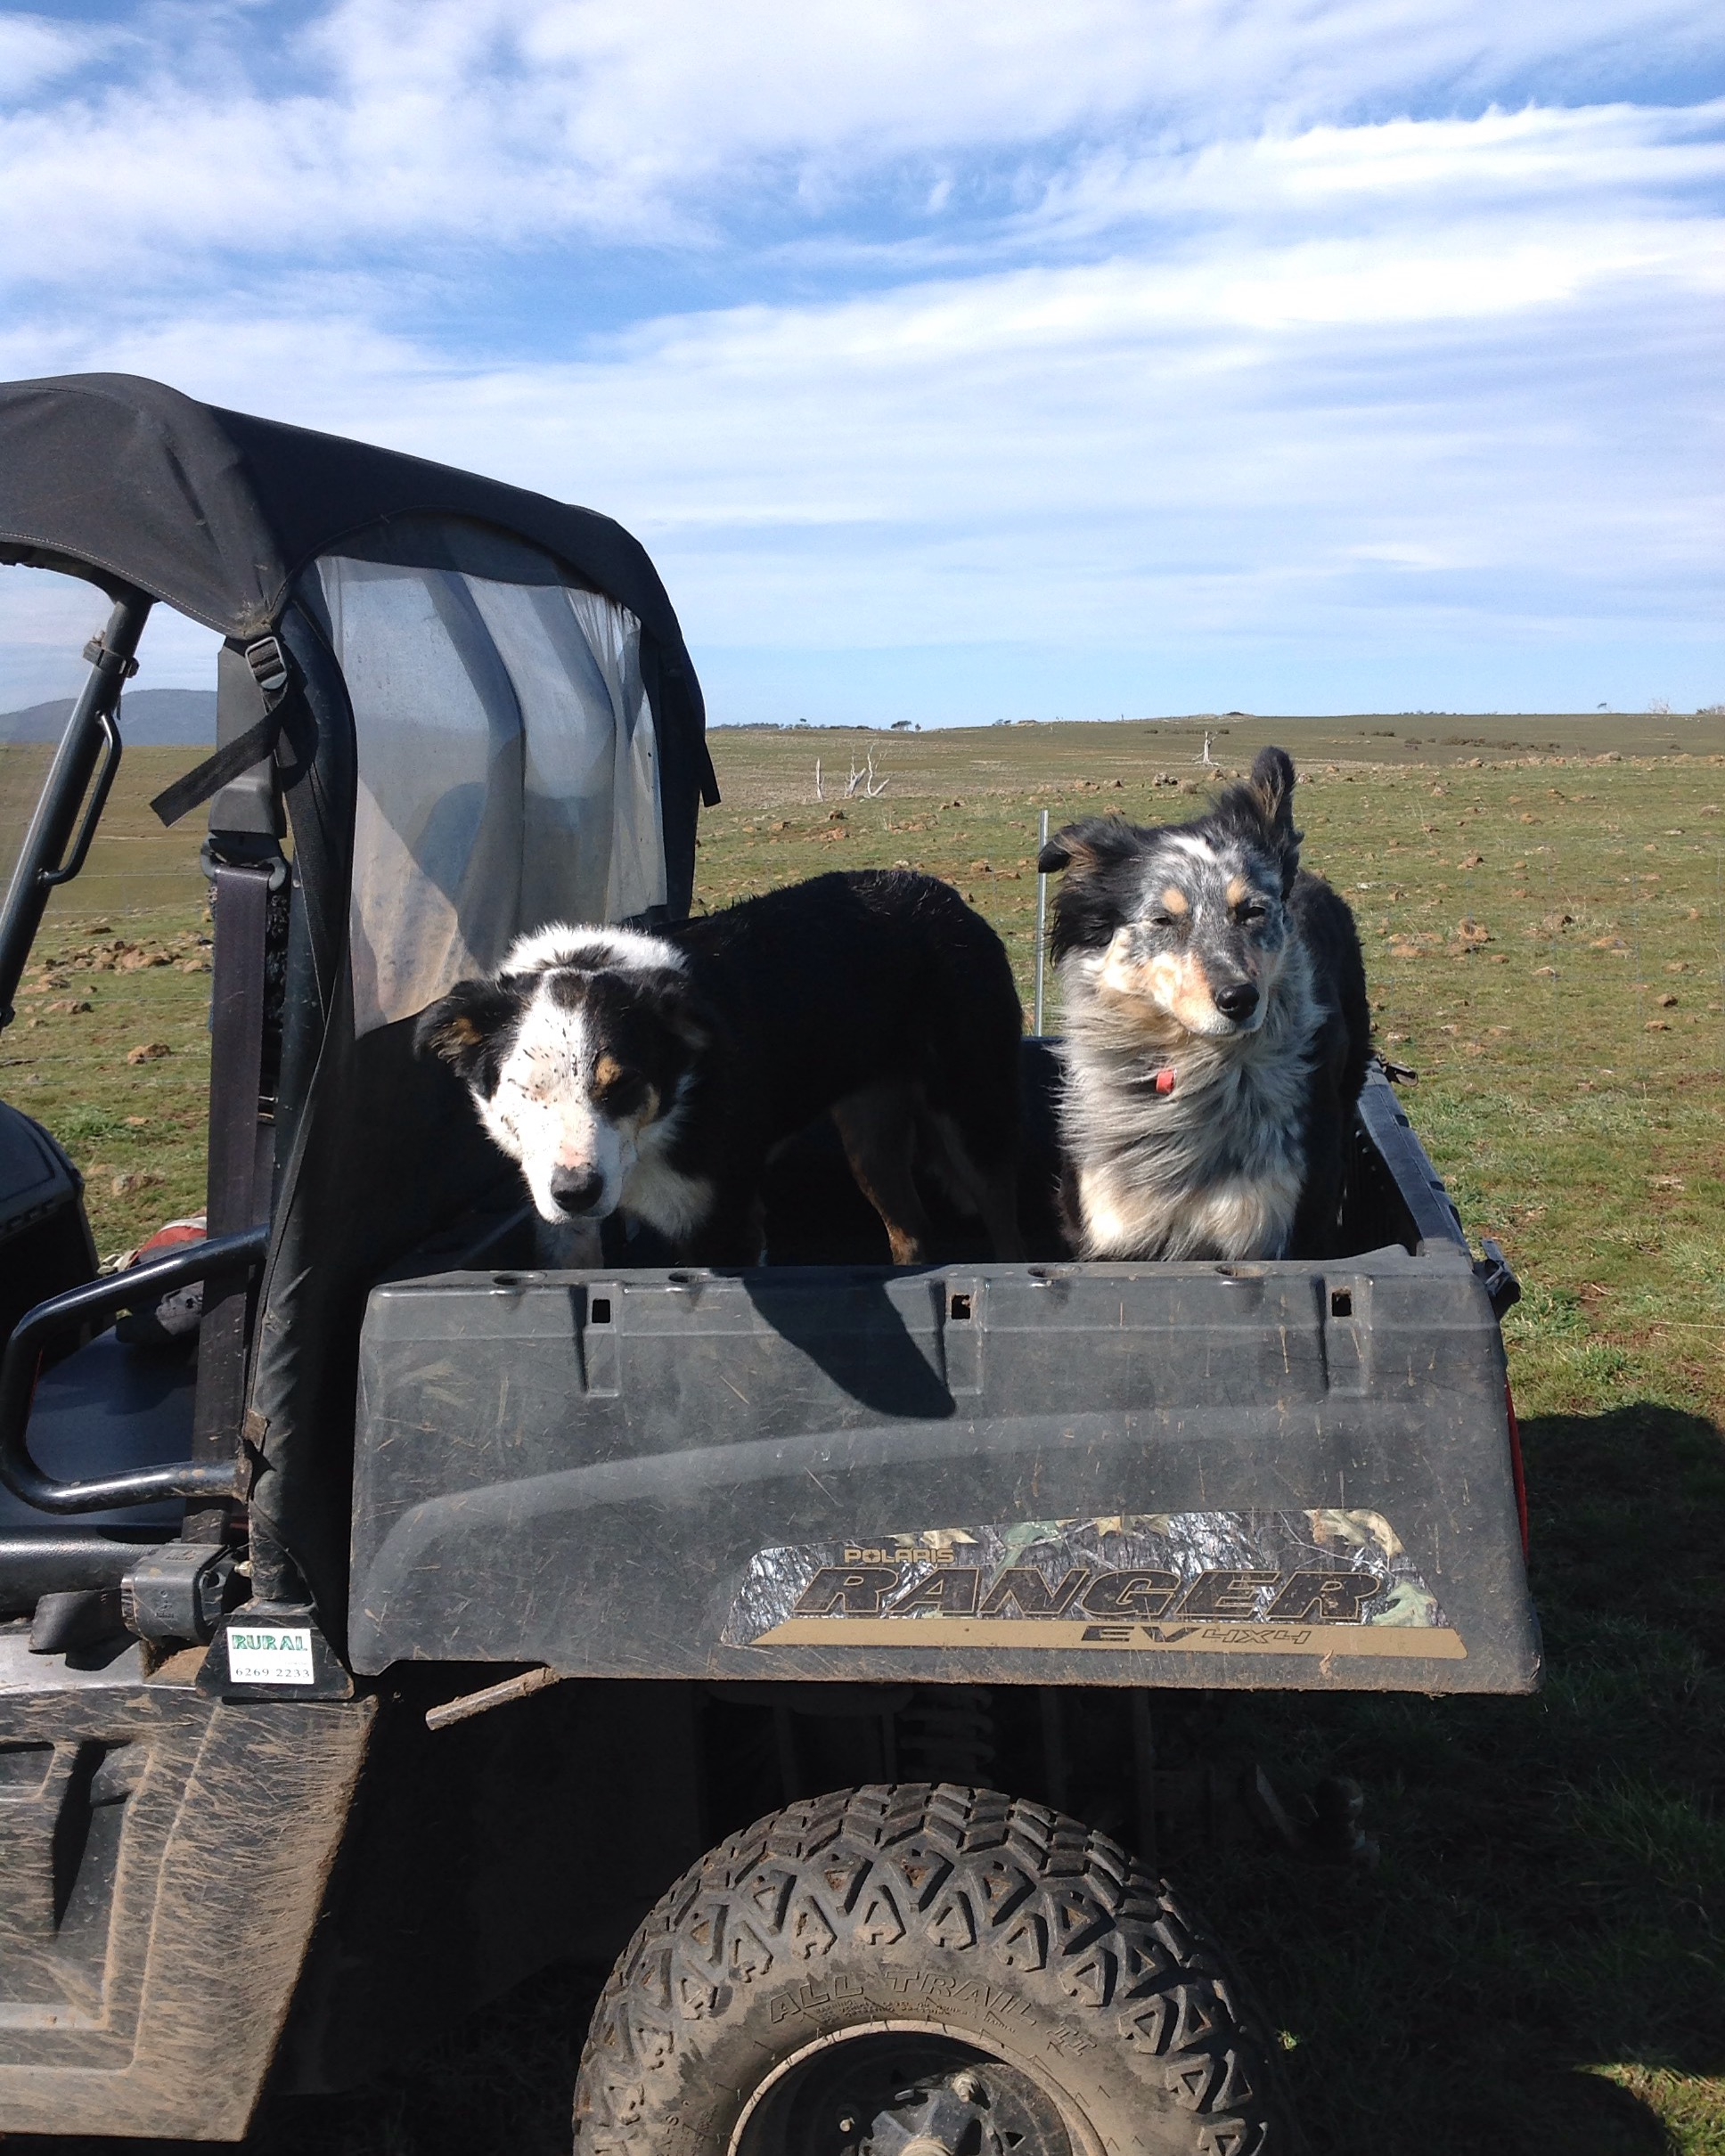 The next generation: Joker and Pearl. We were out looking for a leak in the water system. Joker runs a bit too close to the back wheel--hence the mud freckles!